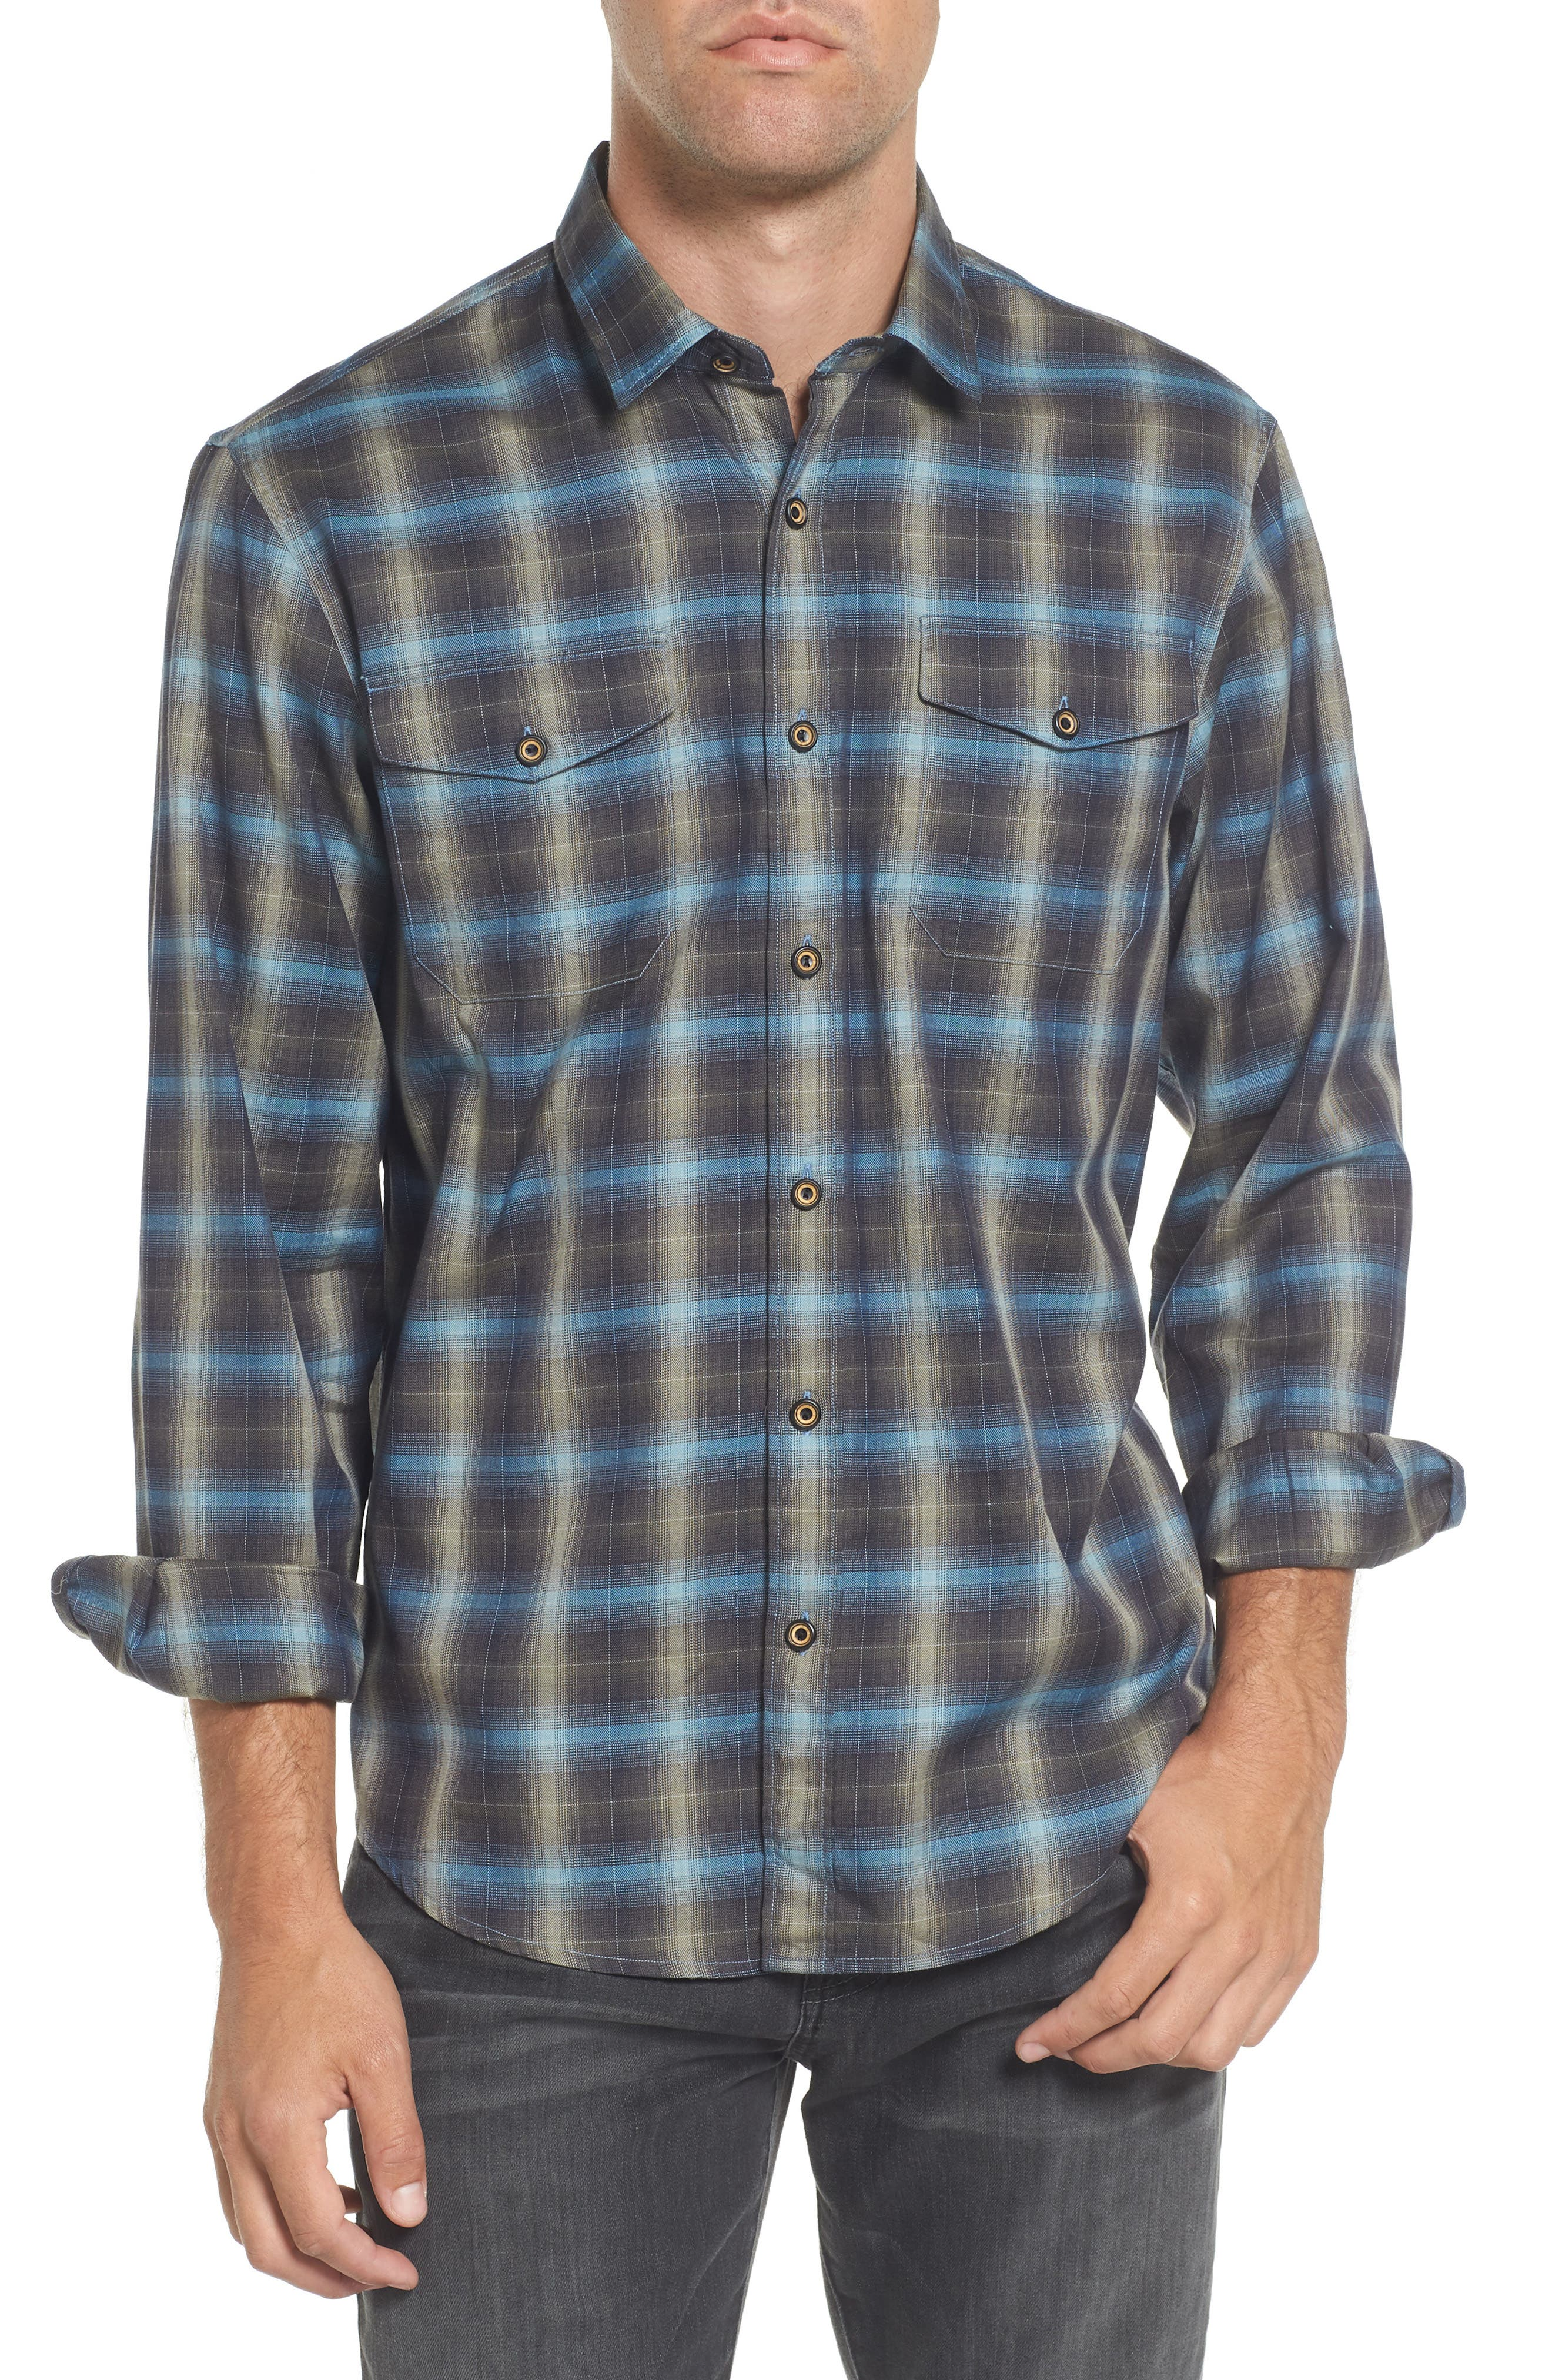 Walnut Plaid Garment Washed Flannel Shirt,                         Main,                         color, Forest